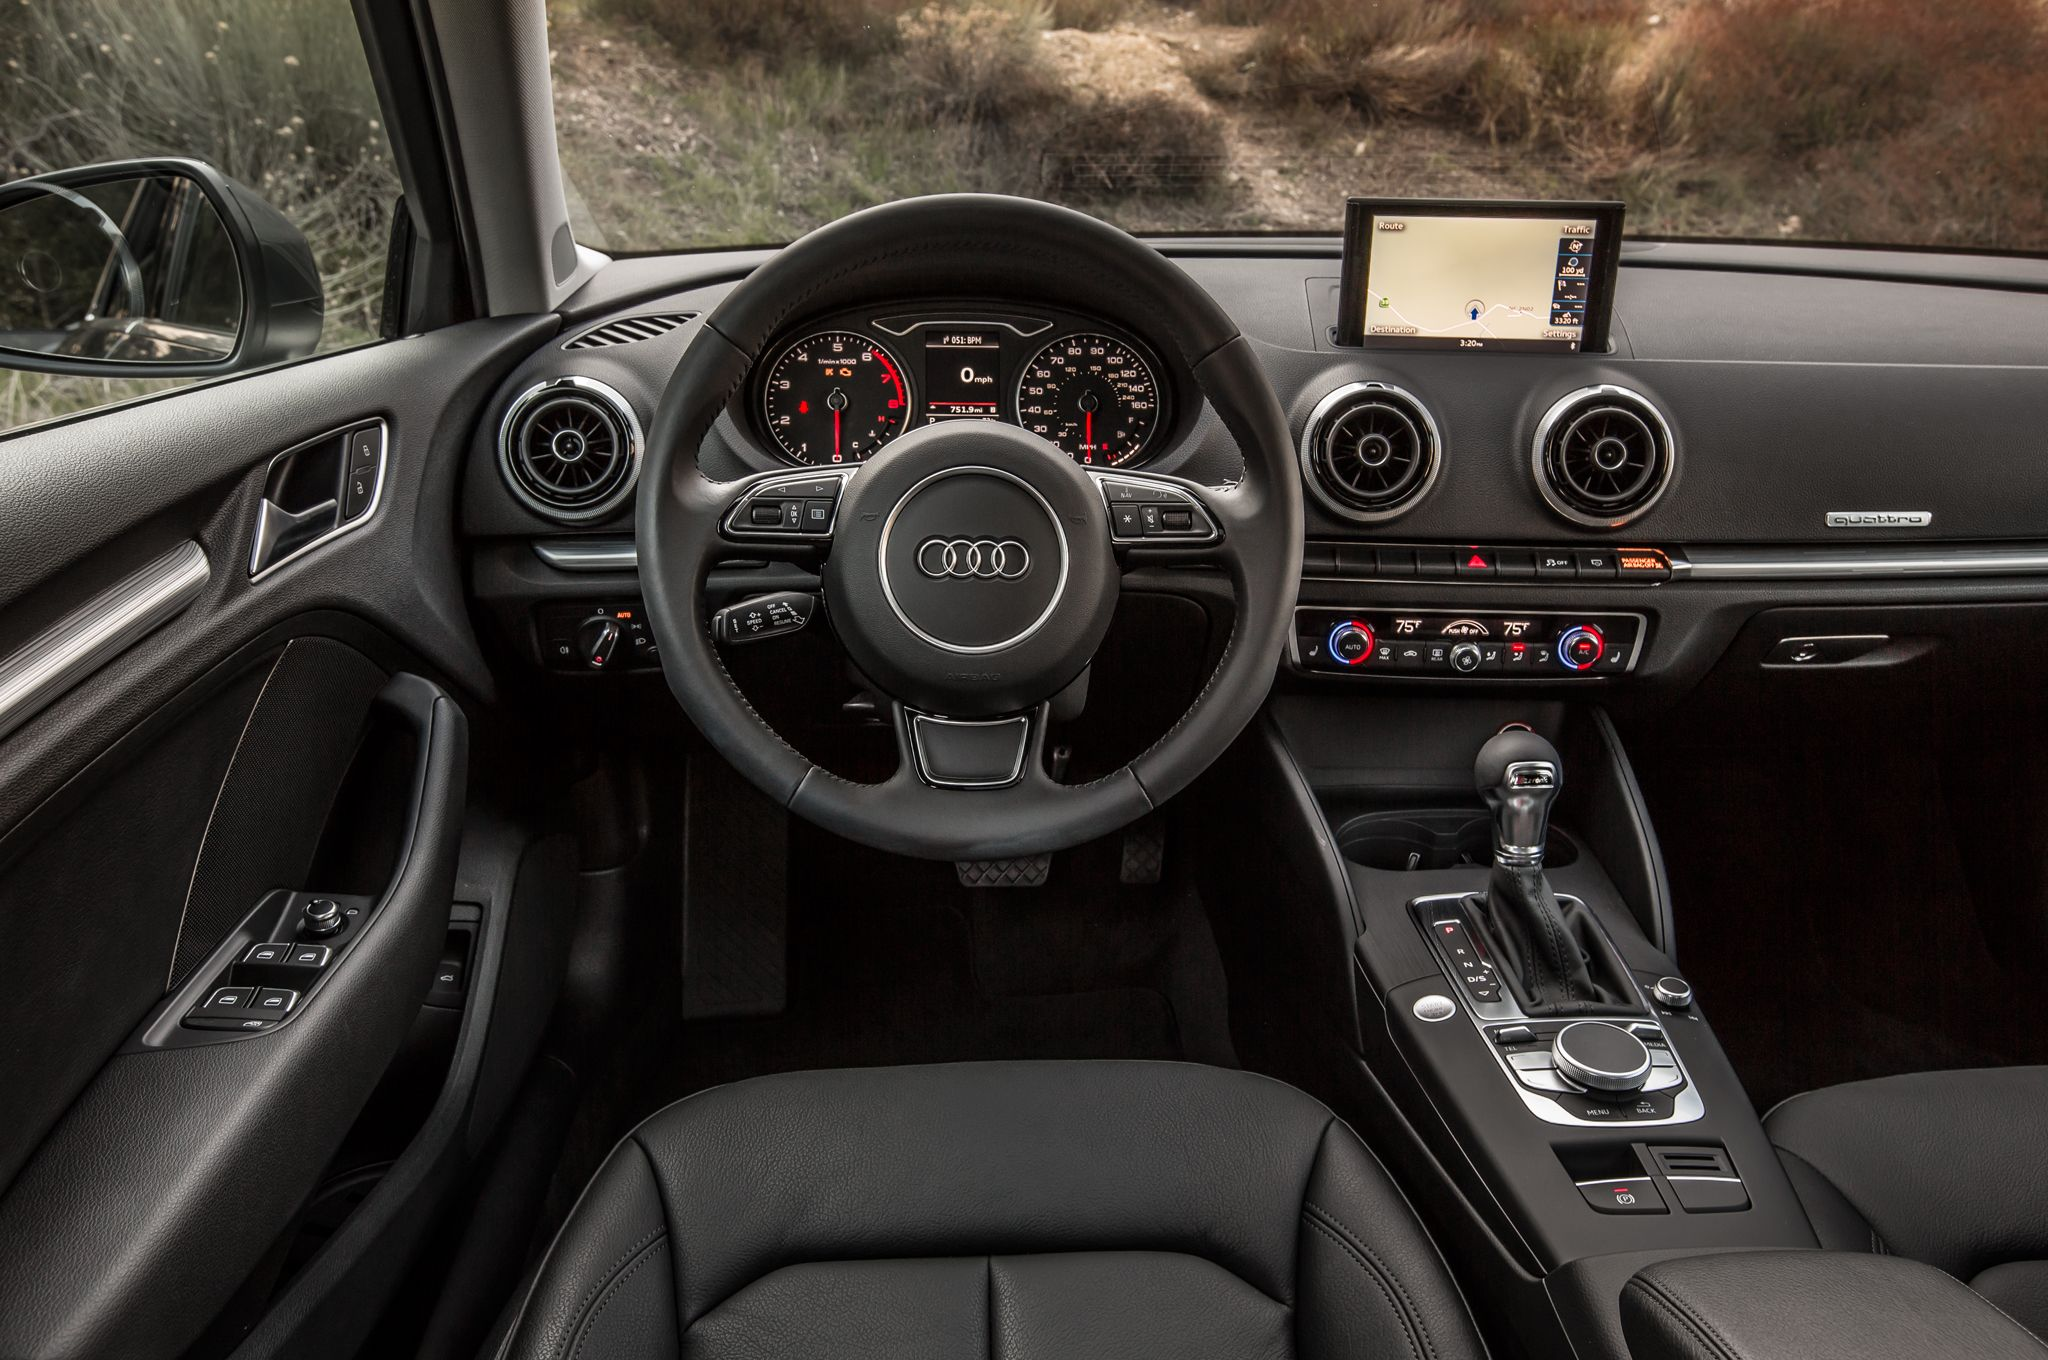 Audi A3 sedan black interior | Wishlist | Pinterest | Audi a3 sedan ...